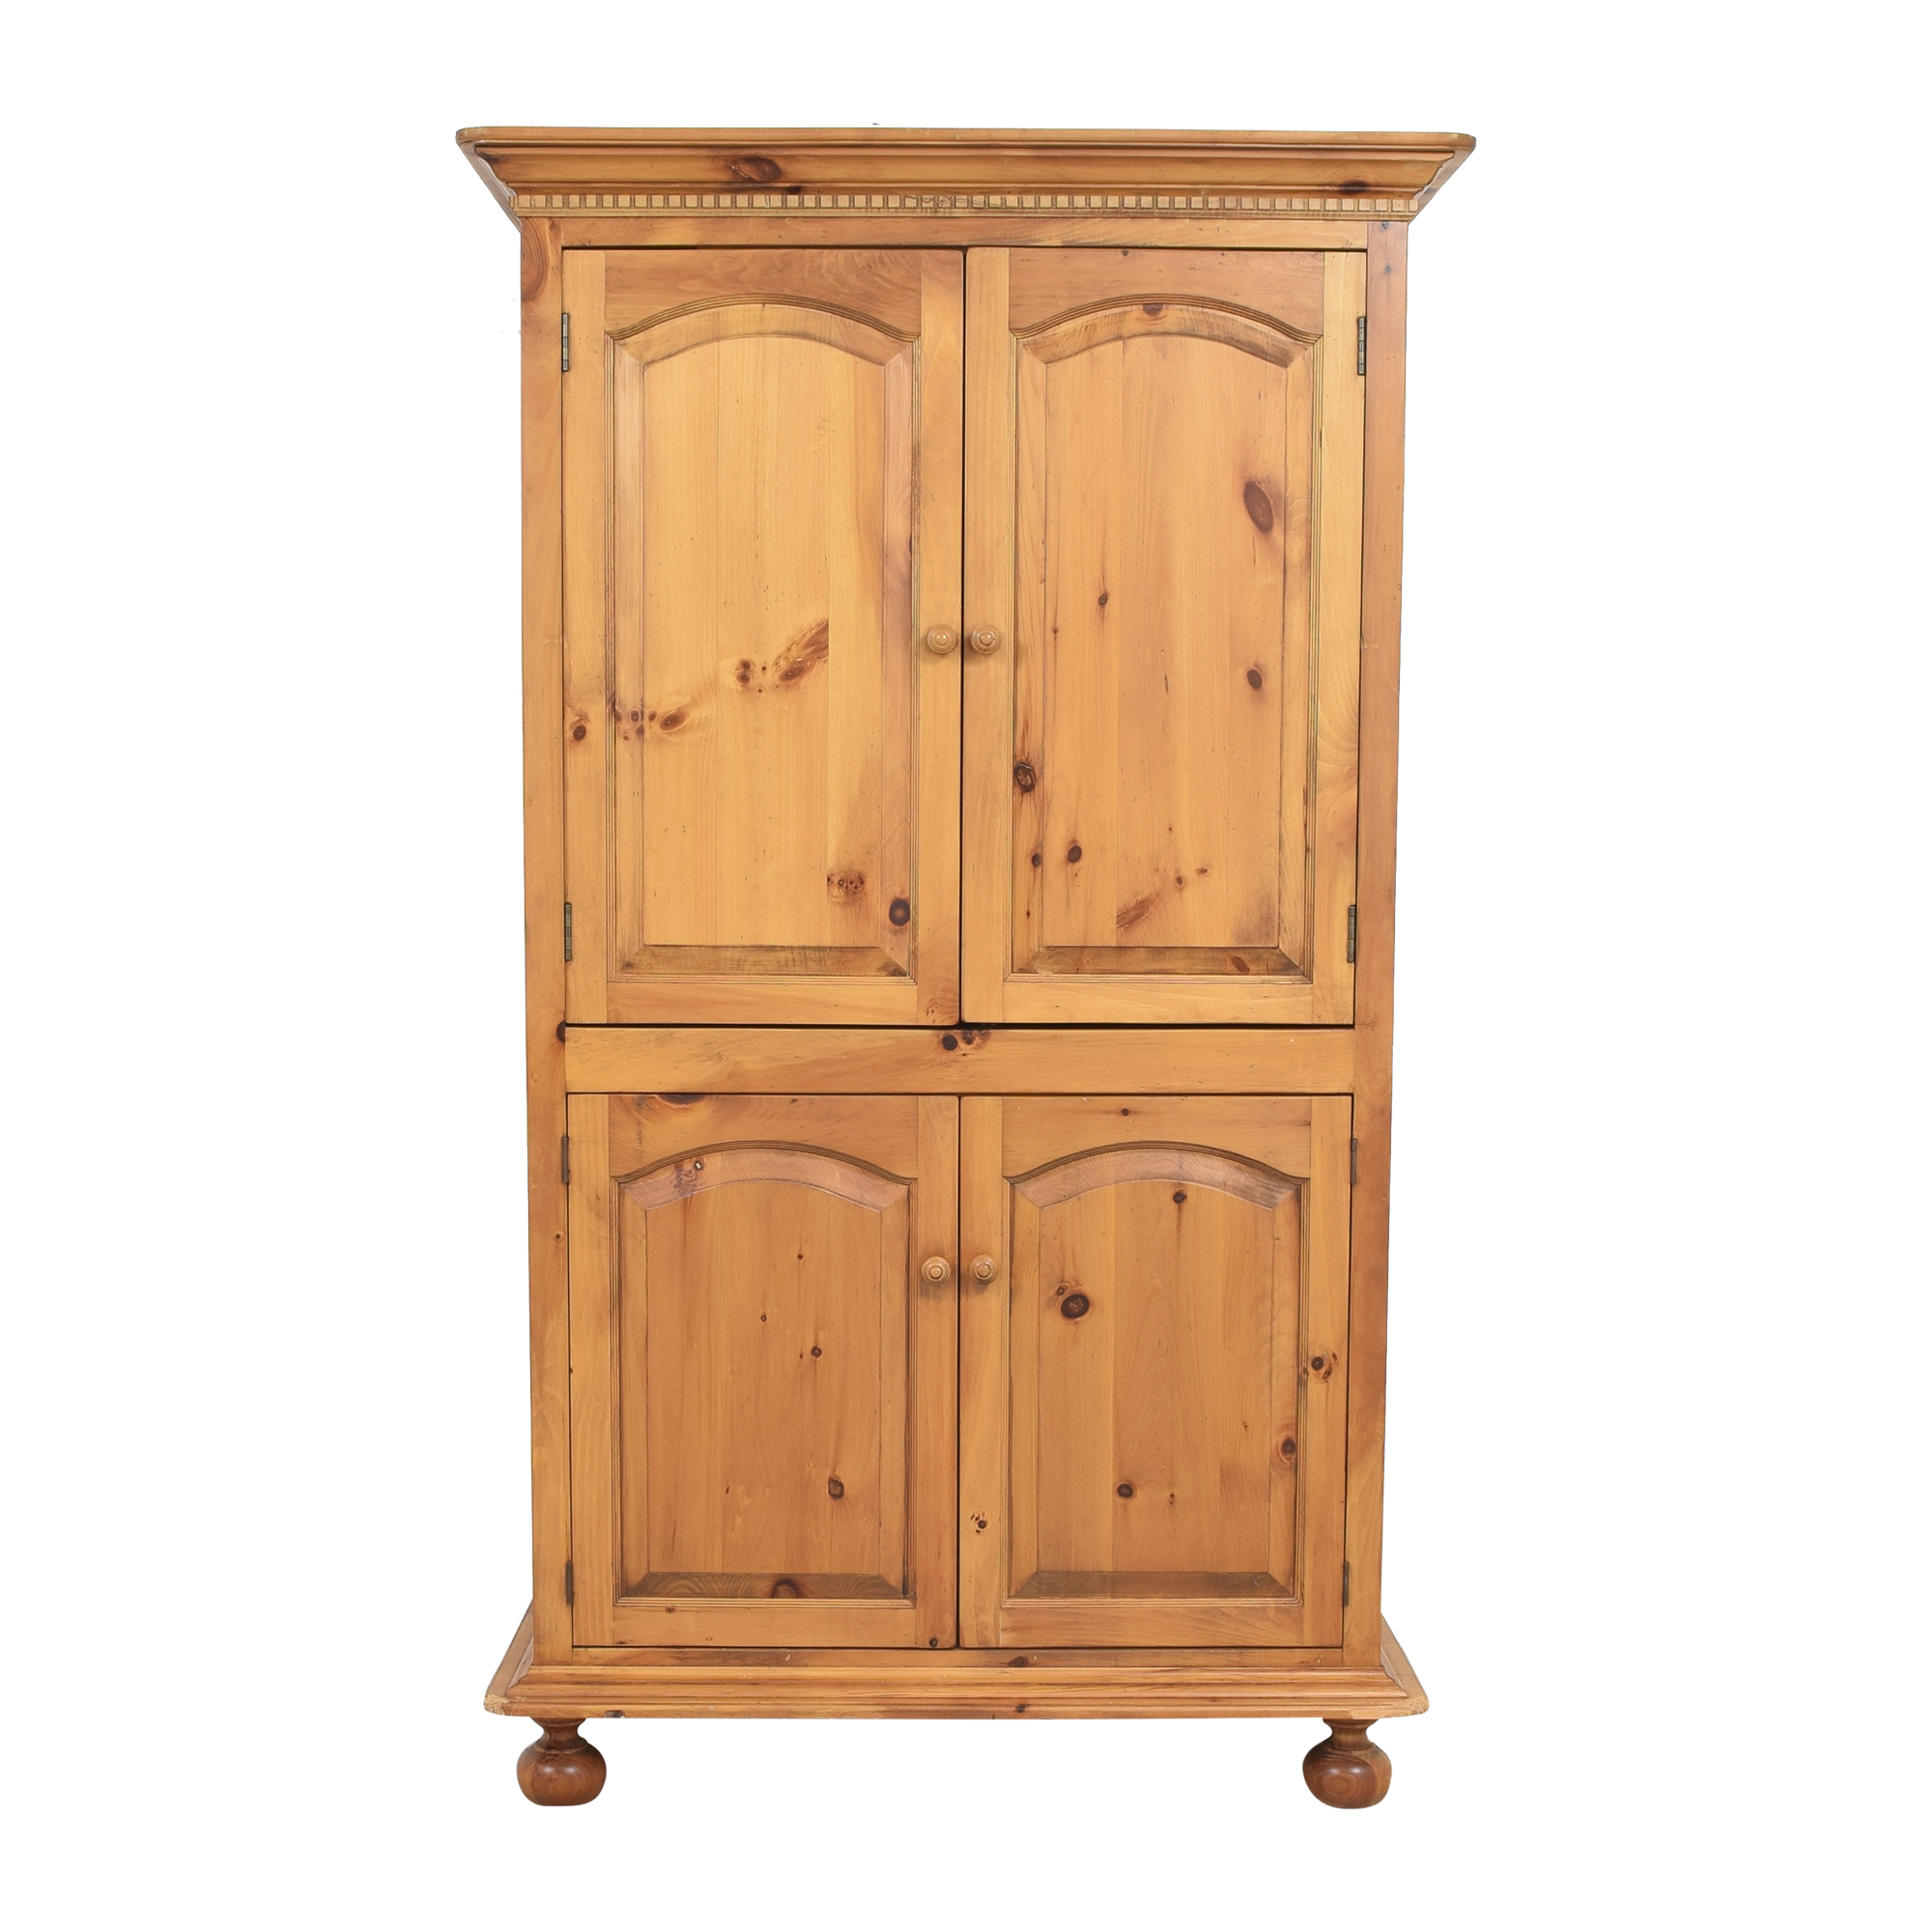 Eddy West Eddy West Media Armoire dimensions